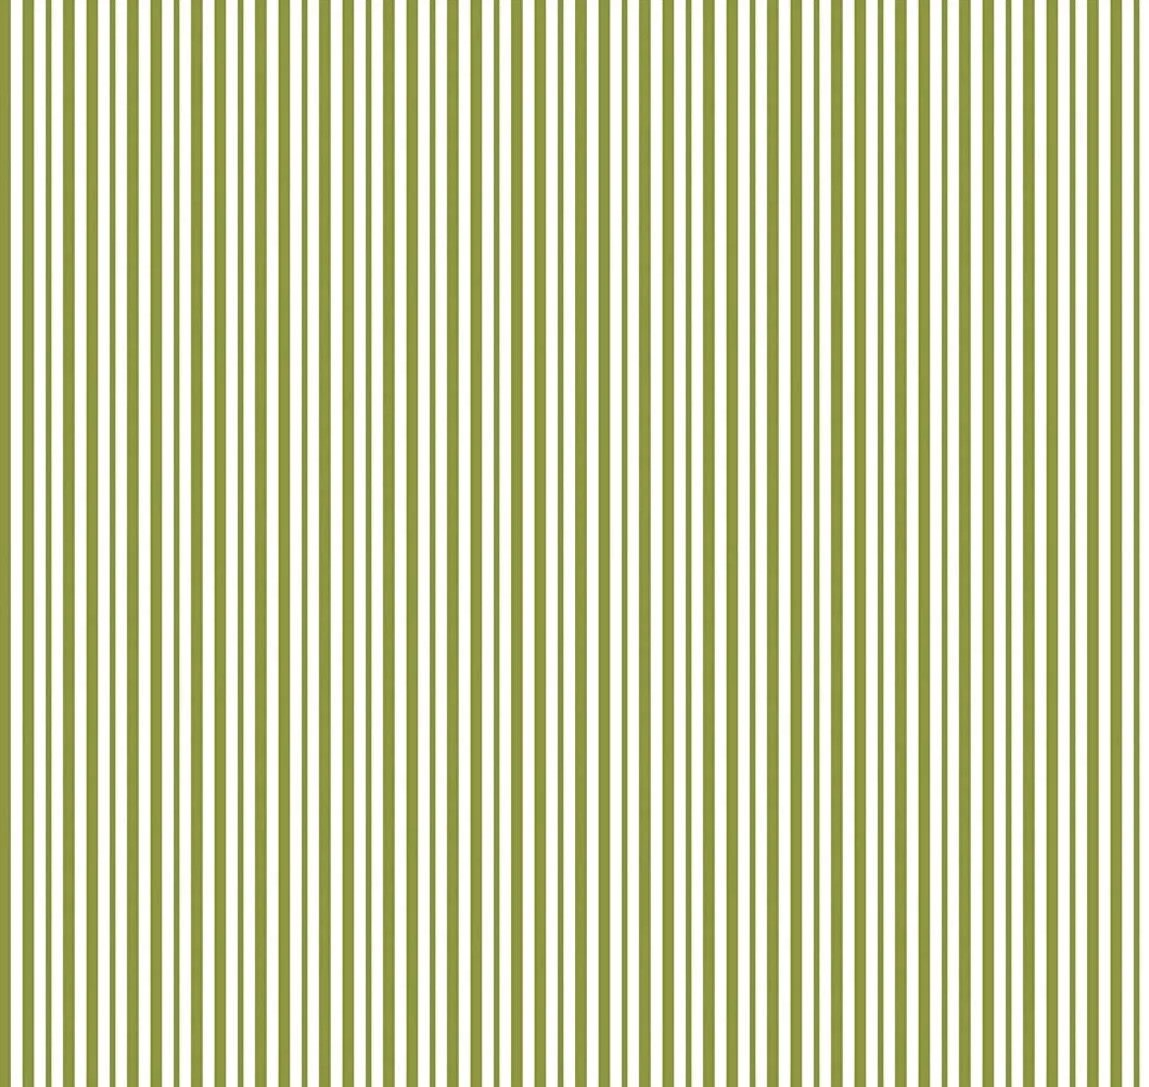 Green Stripes Fabric by the Yard 100 Cotton Fabric Striped Etsy